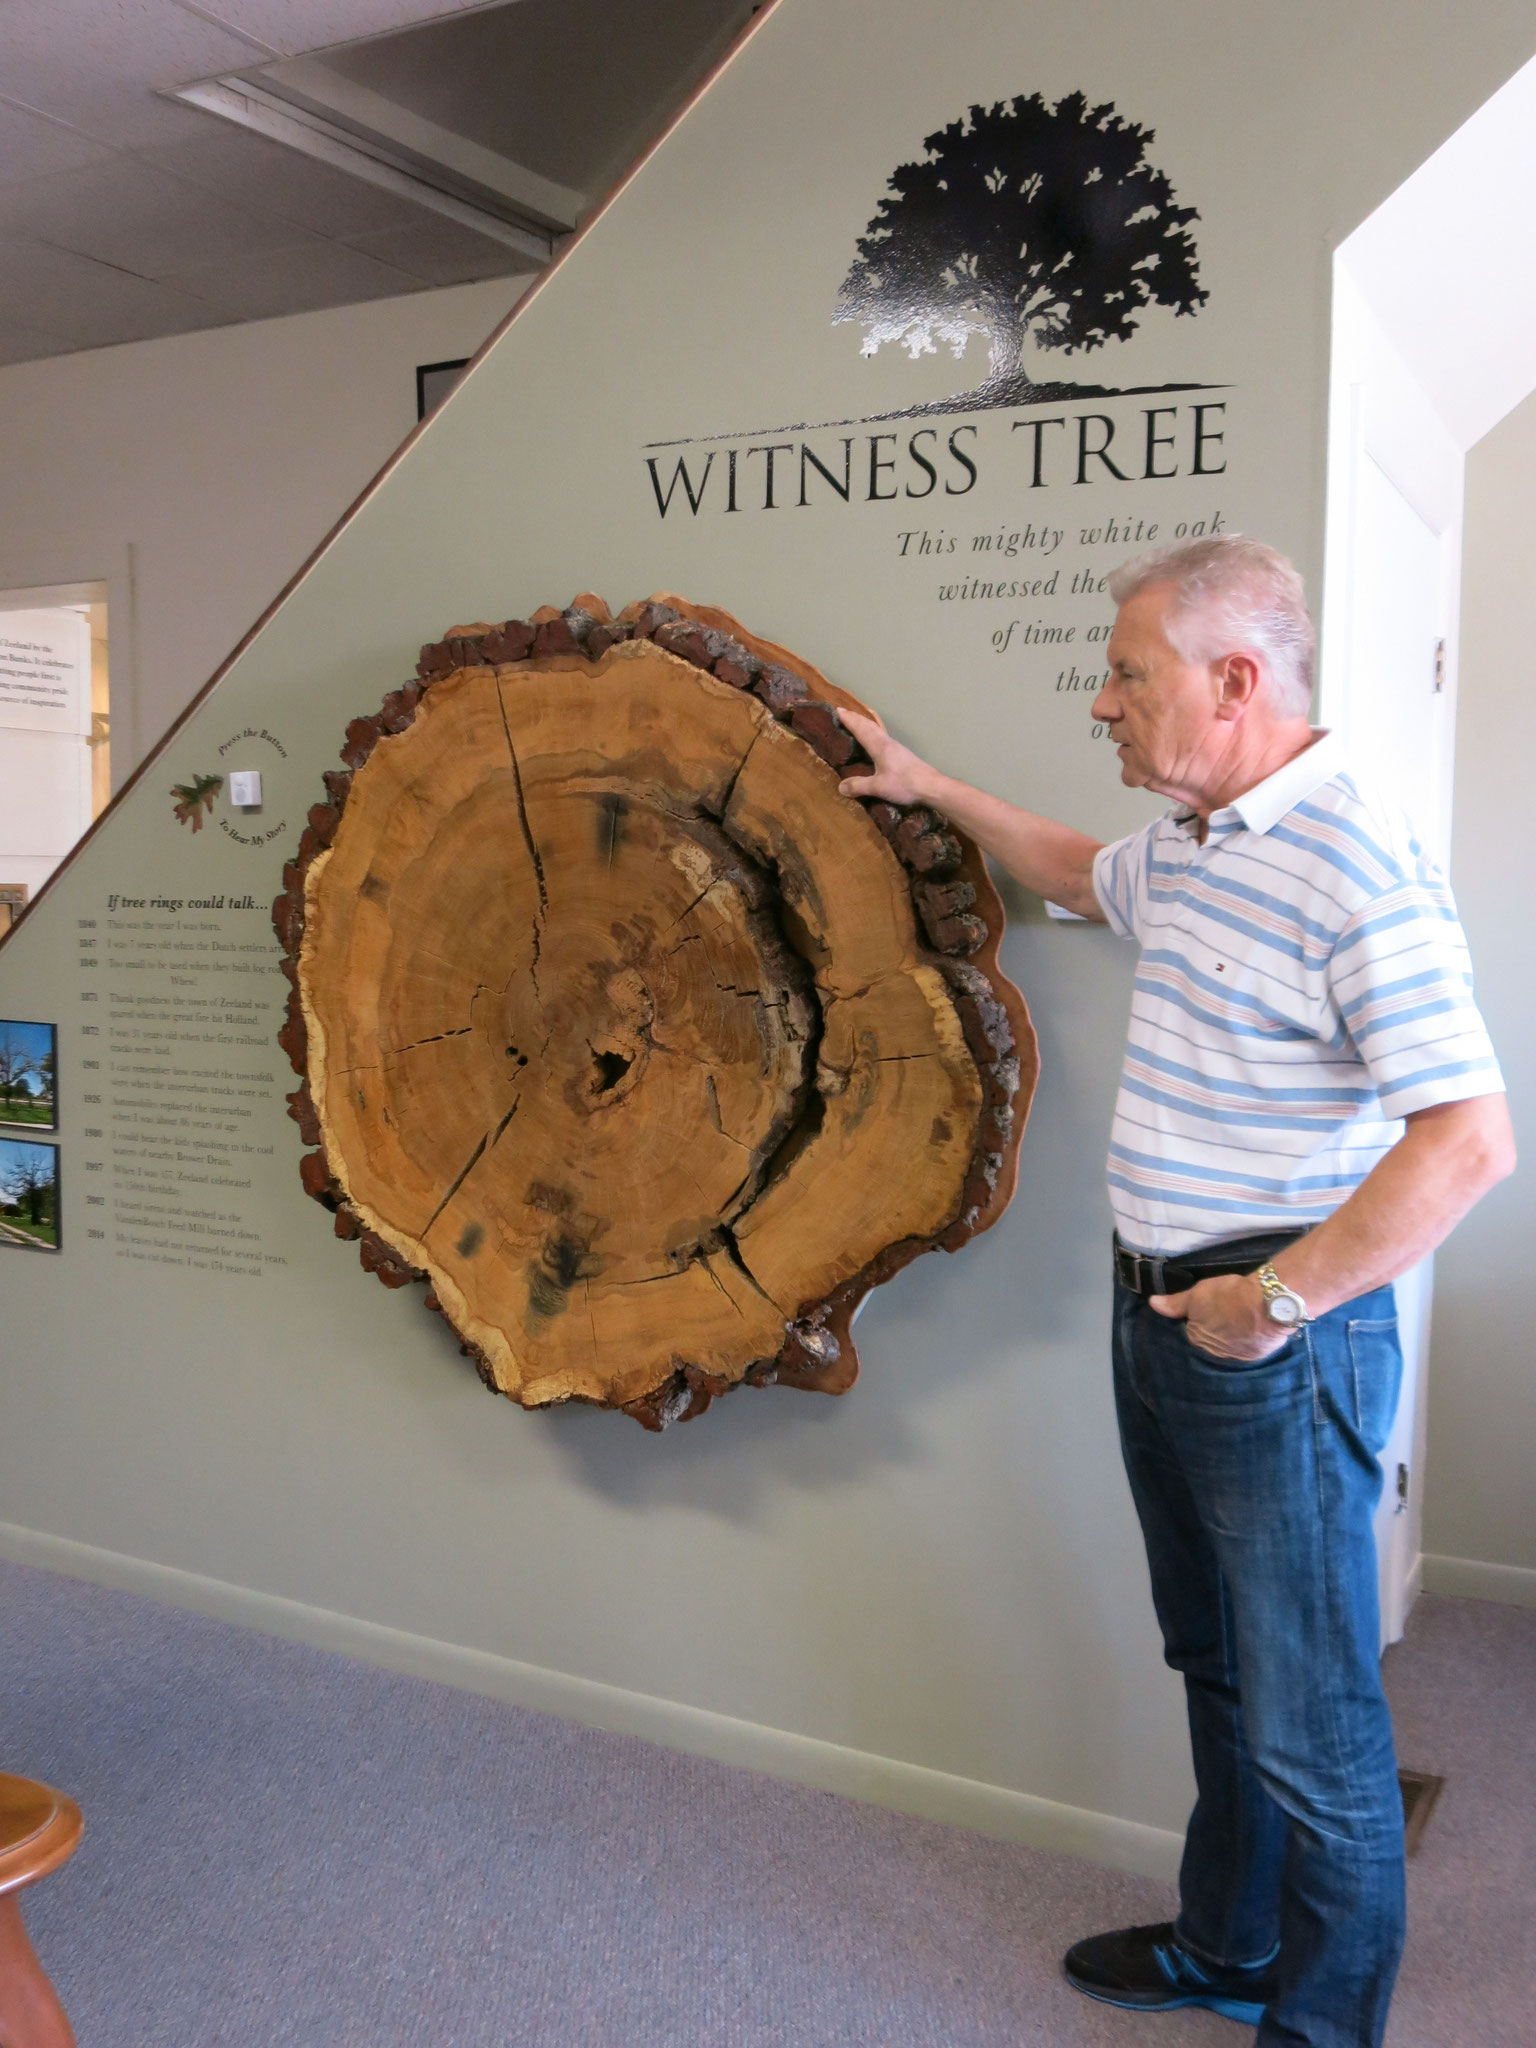 Keith Boonstra shows the newly mounted Witness Tree. Photo courtesy Zeeland Historical Society.